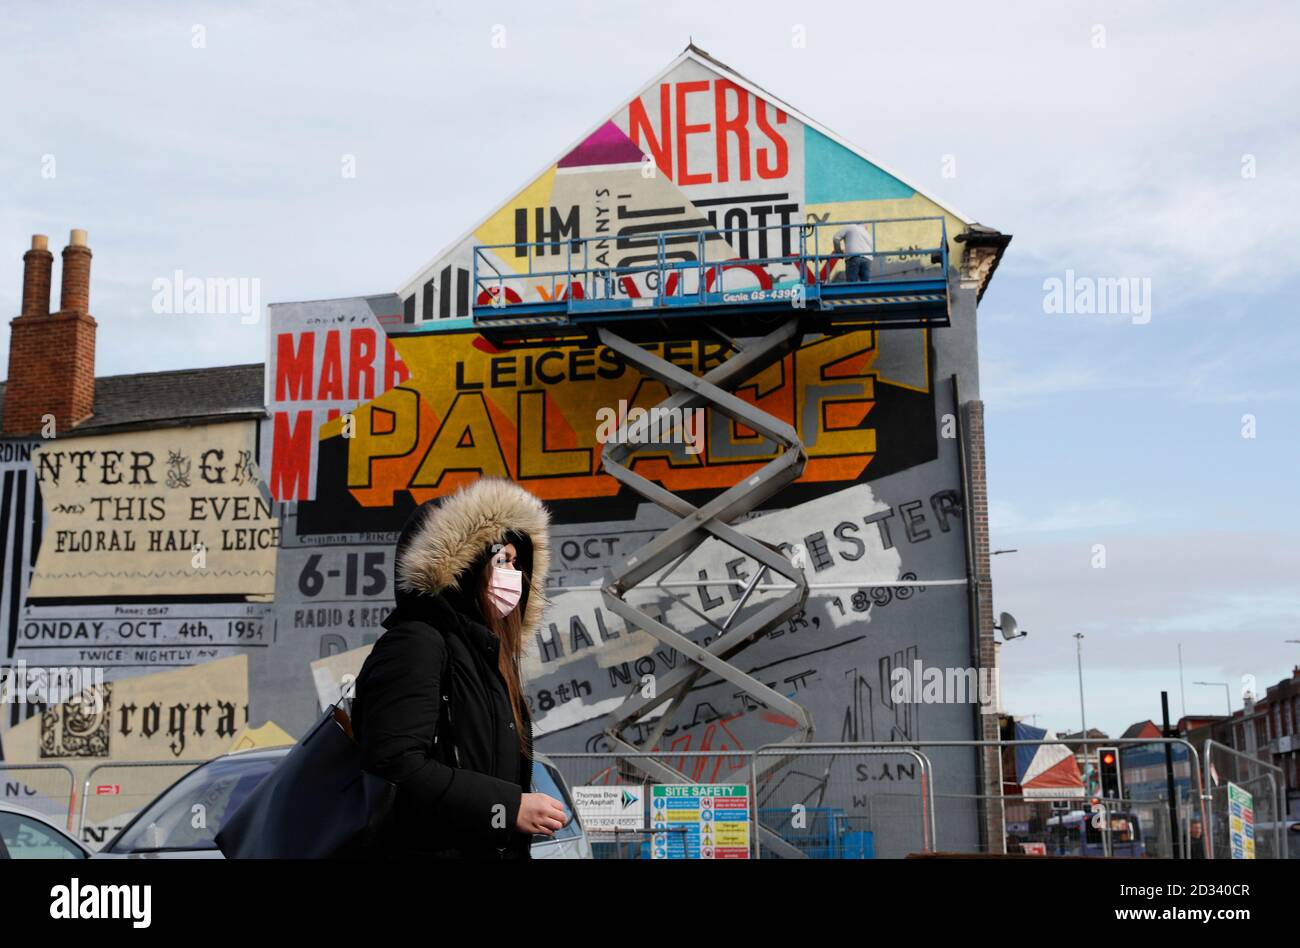 Leicester, Leicestershire, UK. 7th October 2020. A woman passes an artist working on a street mural 100 days since the UKÕs first local coronavirus pandemic lockdown was announced in the city. Credit Darren Staples/Alamy Live News. Stock Photo